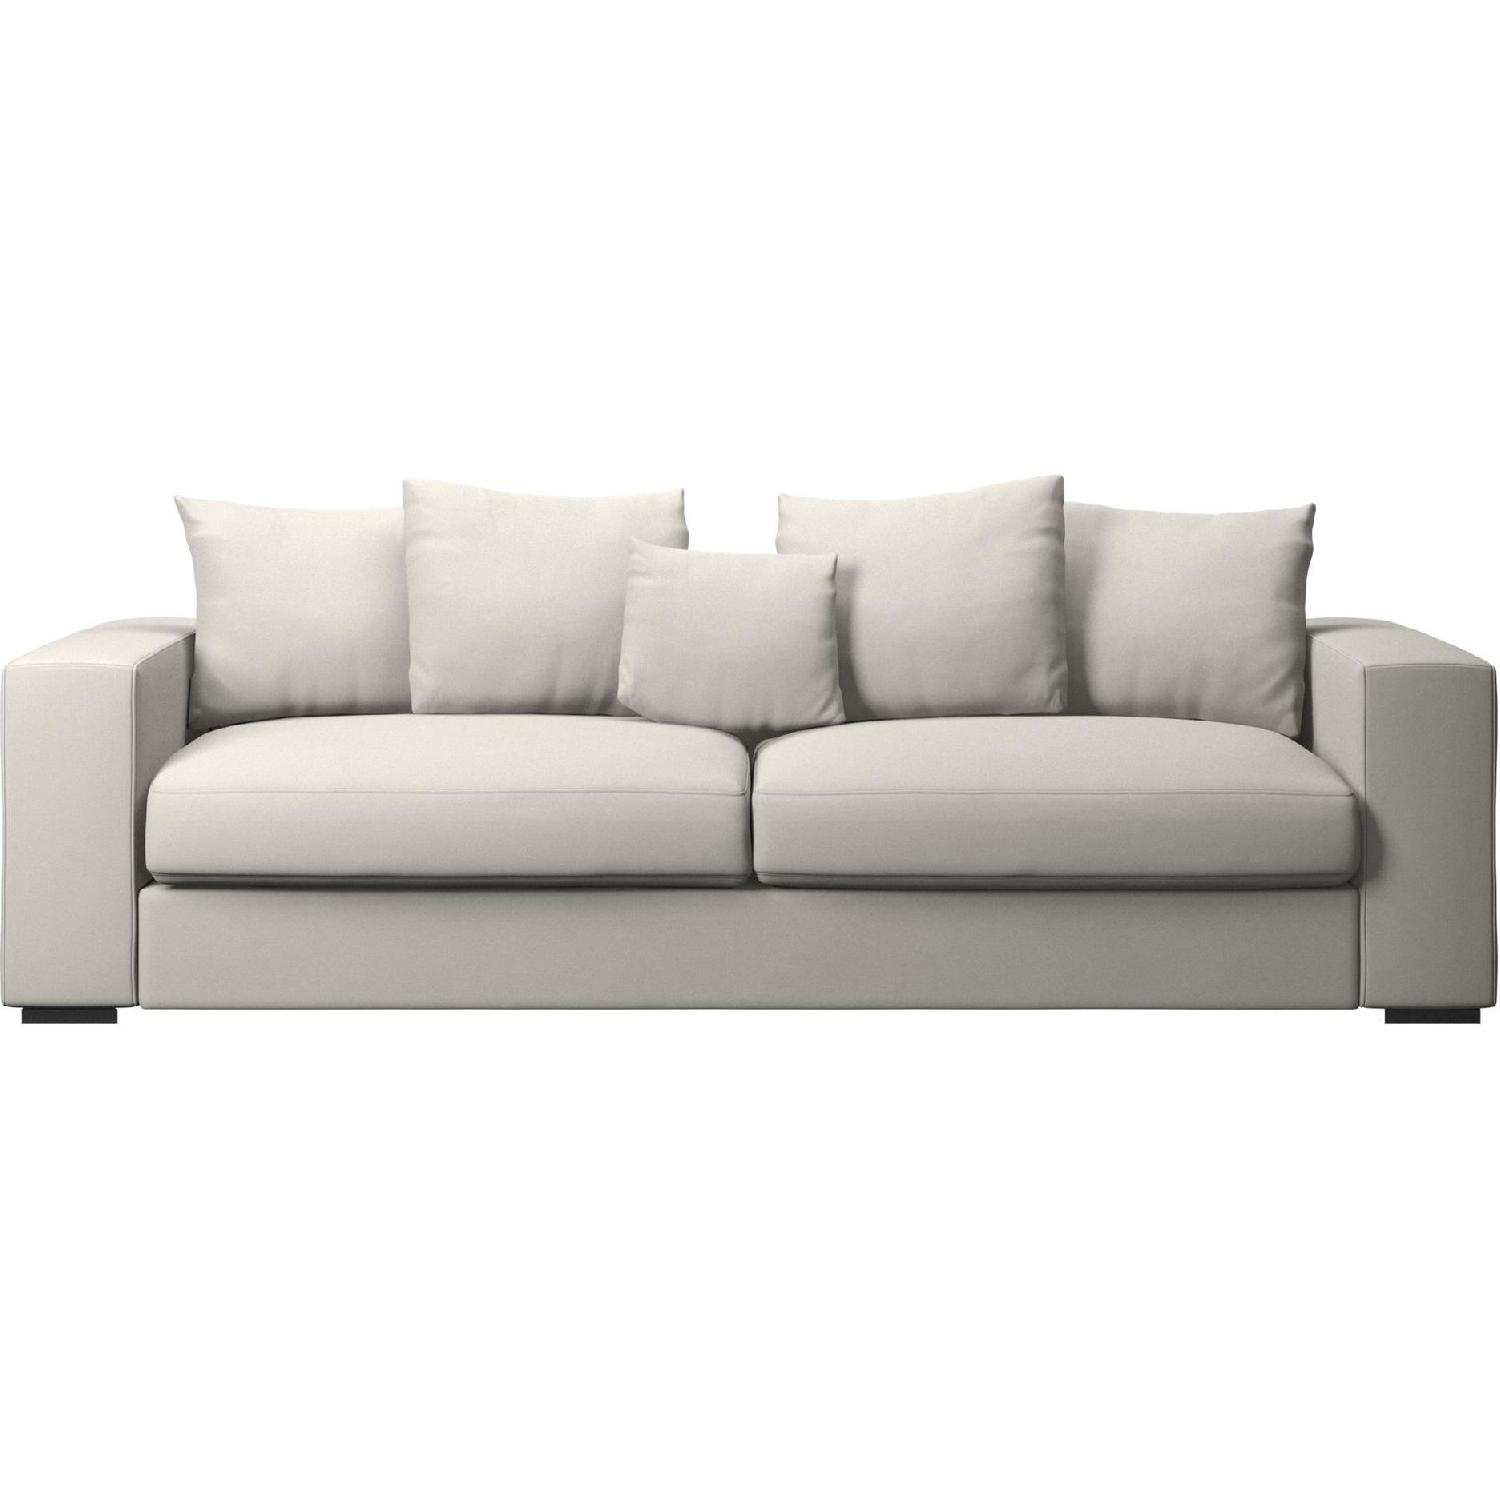 BoConcept Off White Upholstered Sofa ...